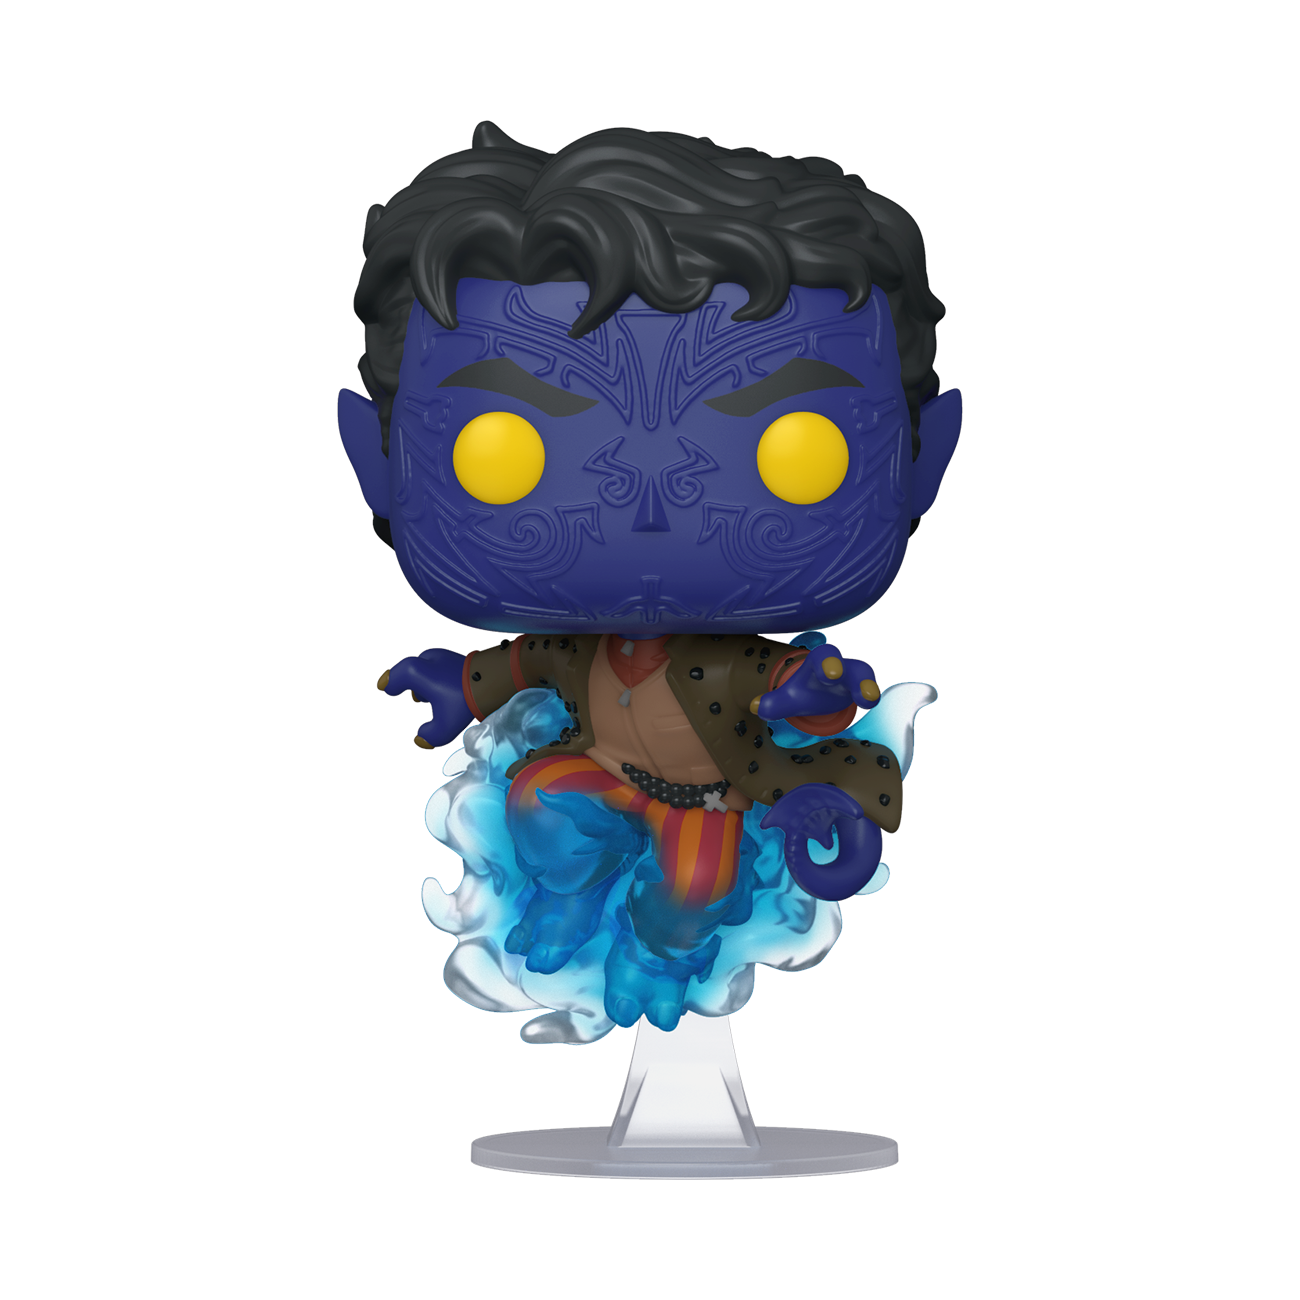 X-Men - Nightcrawler Summer Convention 2020 Exclusive Pop! Vinyl Figure